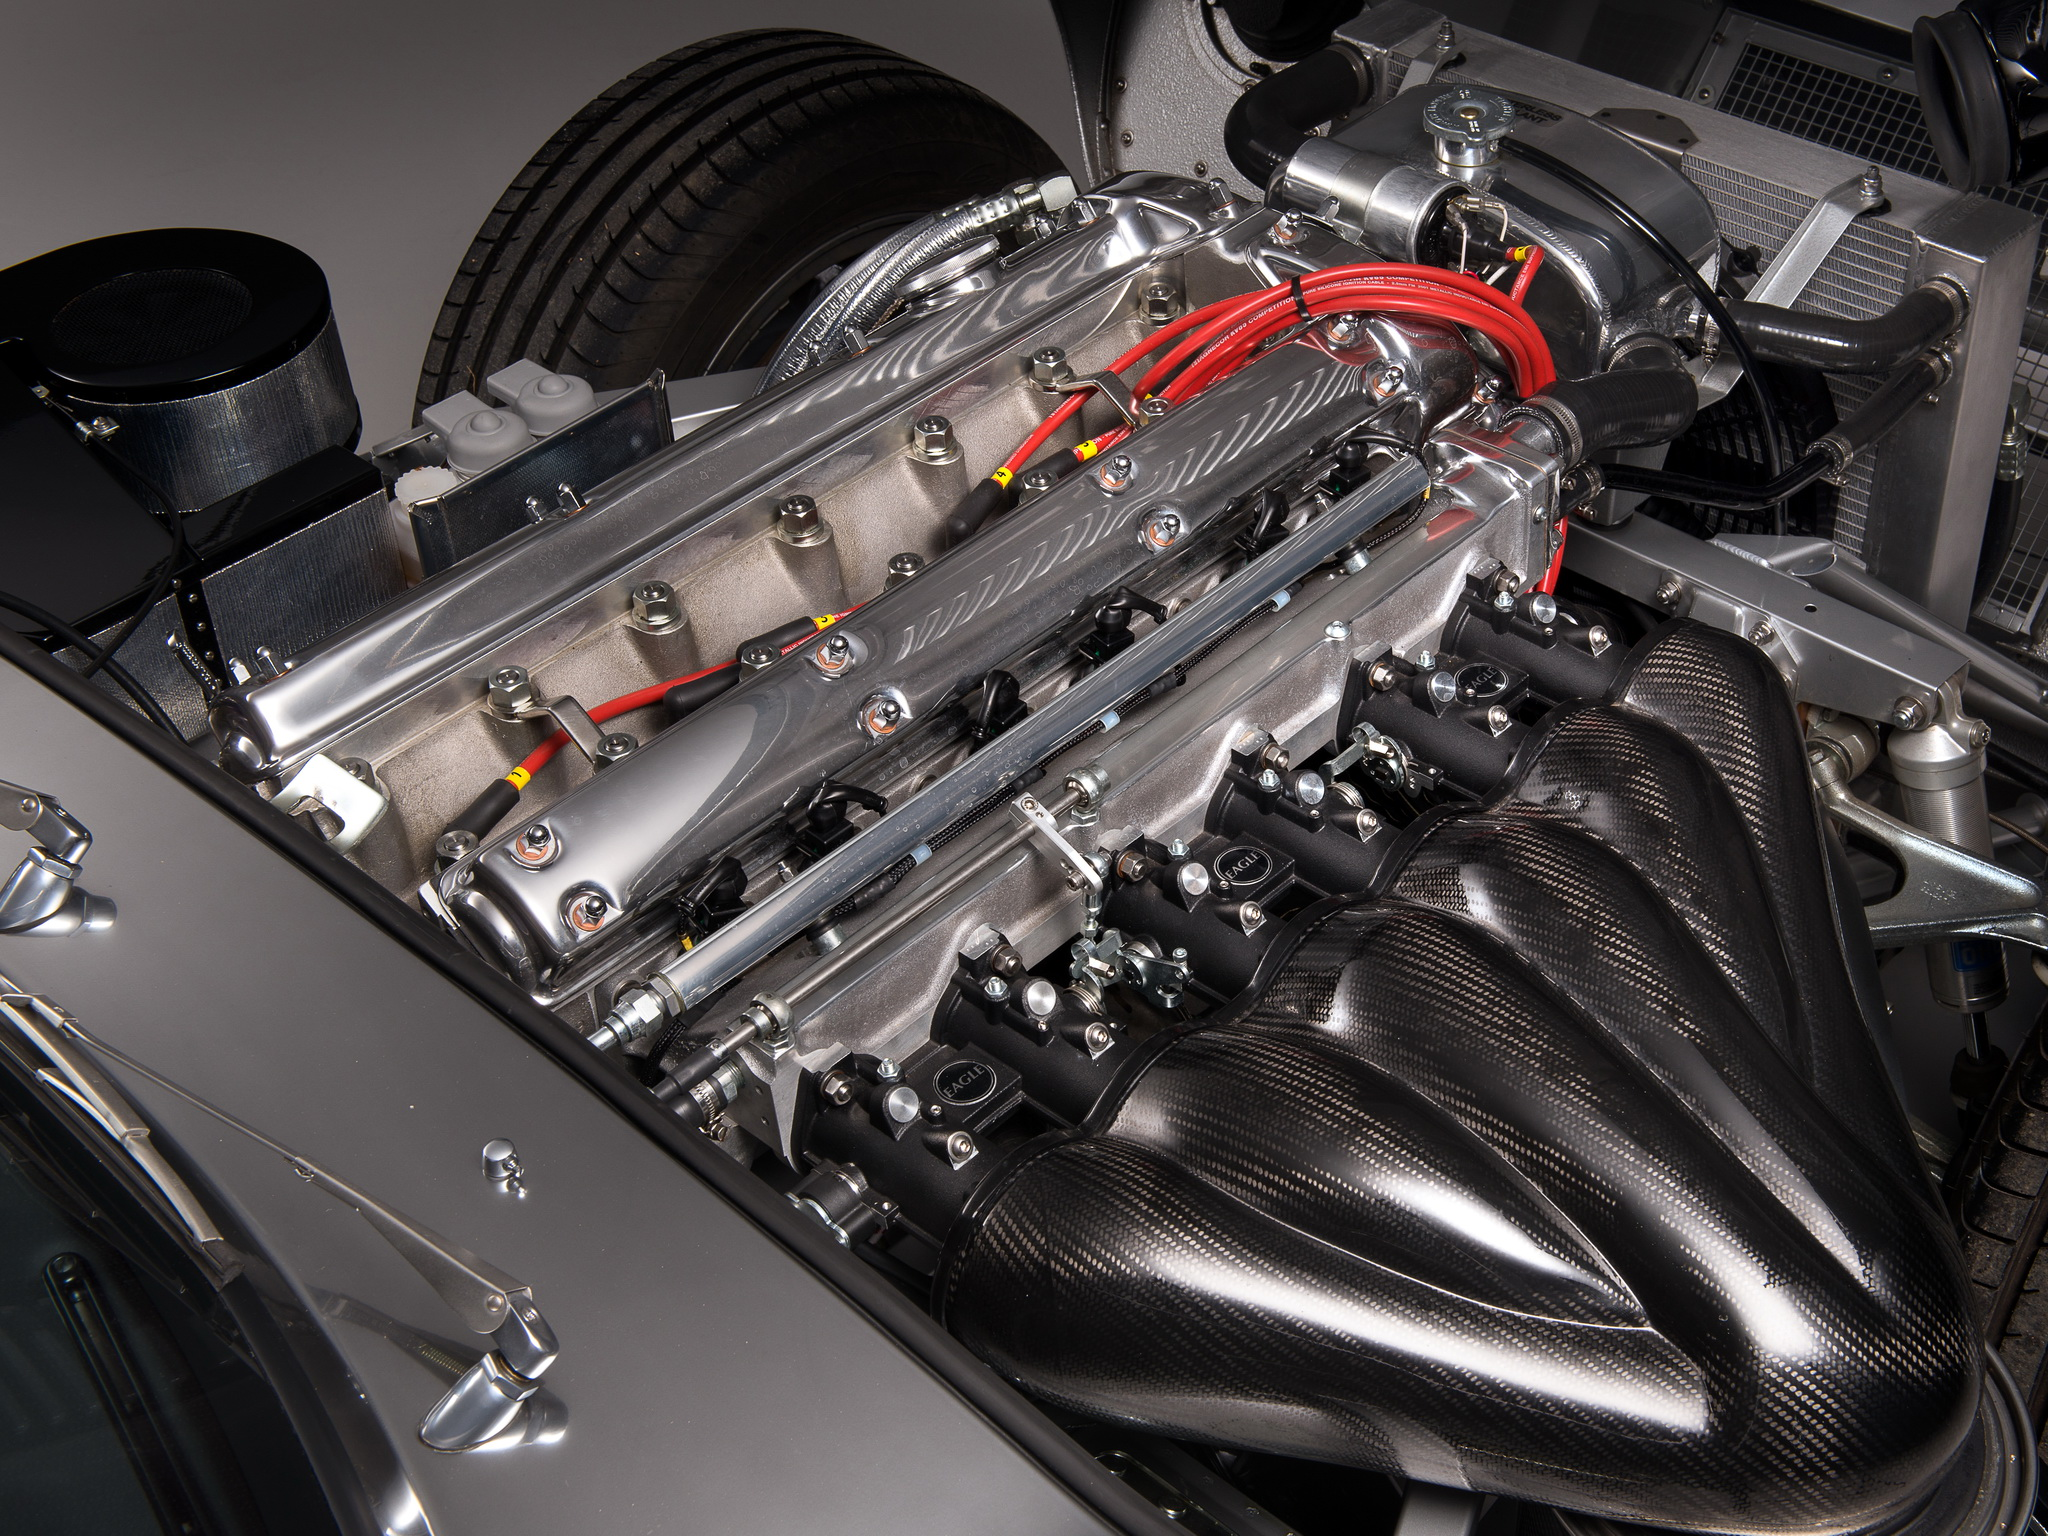 The 4.7 liter 6 cylinder engine of the Eagle. Hand built with the aesthetics of the old combined with twenty first century technology. (Picture courtesy of wallpaperup.com)